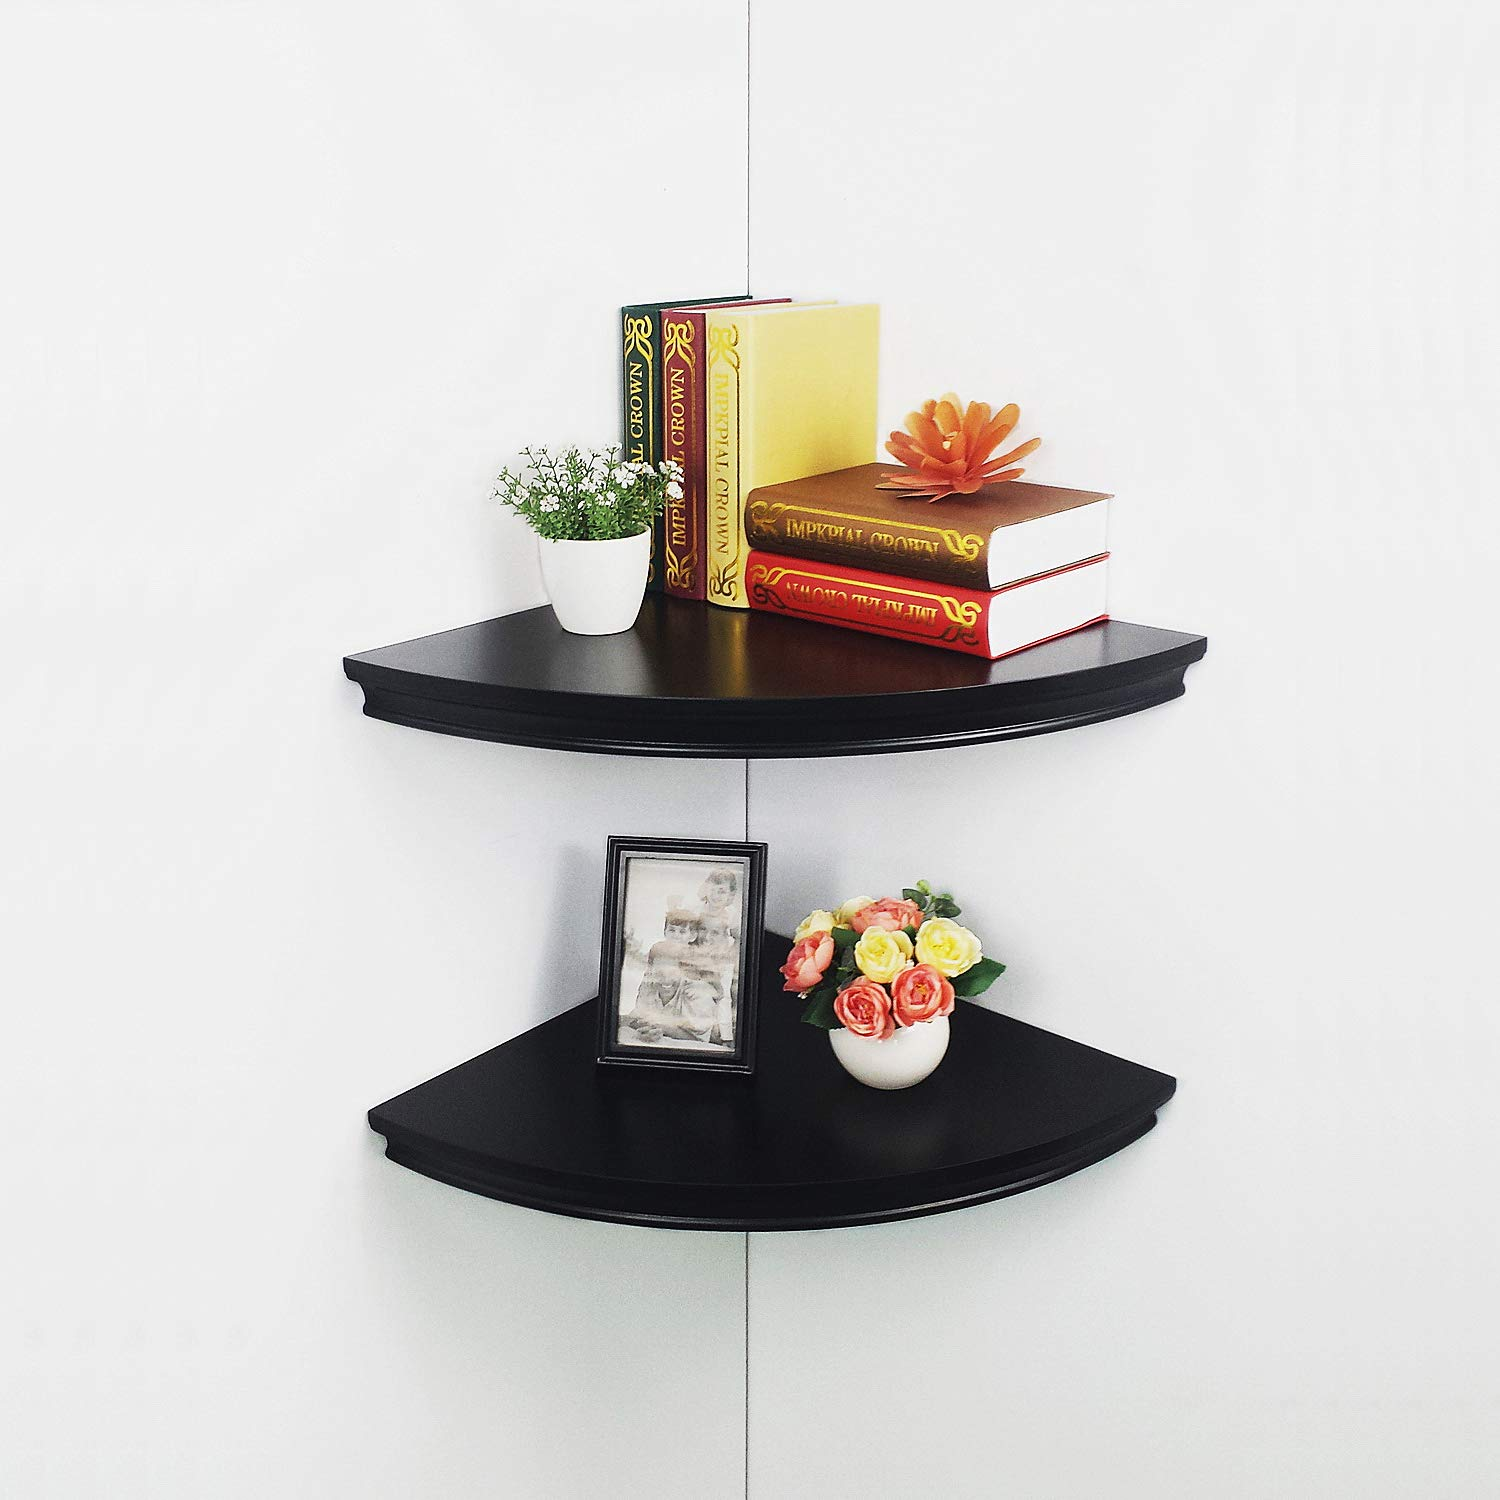 hao set large classic radial corner wall shelves floating shelf with drawer mdf shelving approx black home kitchen oak shoe cabinet ikea attaching simple white ribba ture ledge